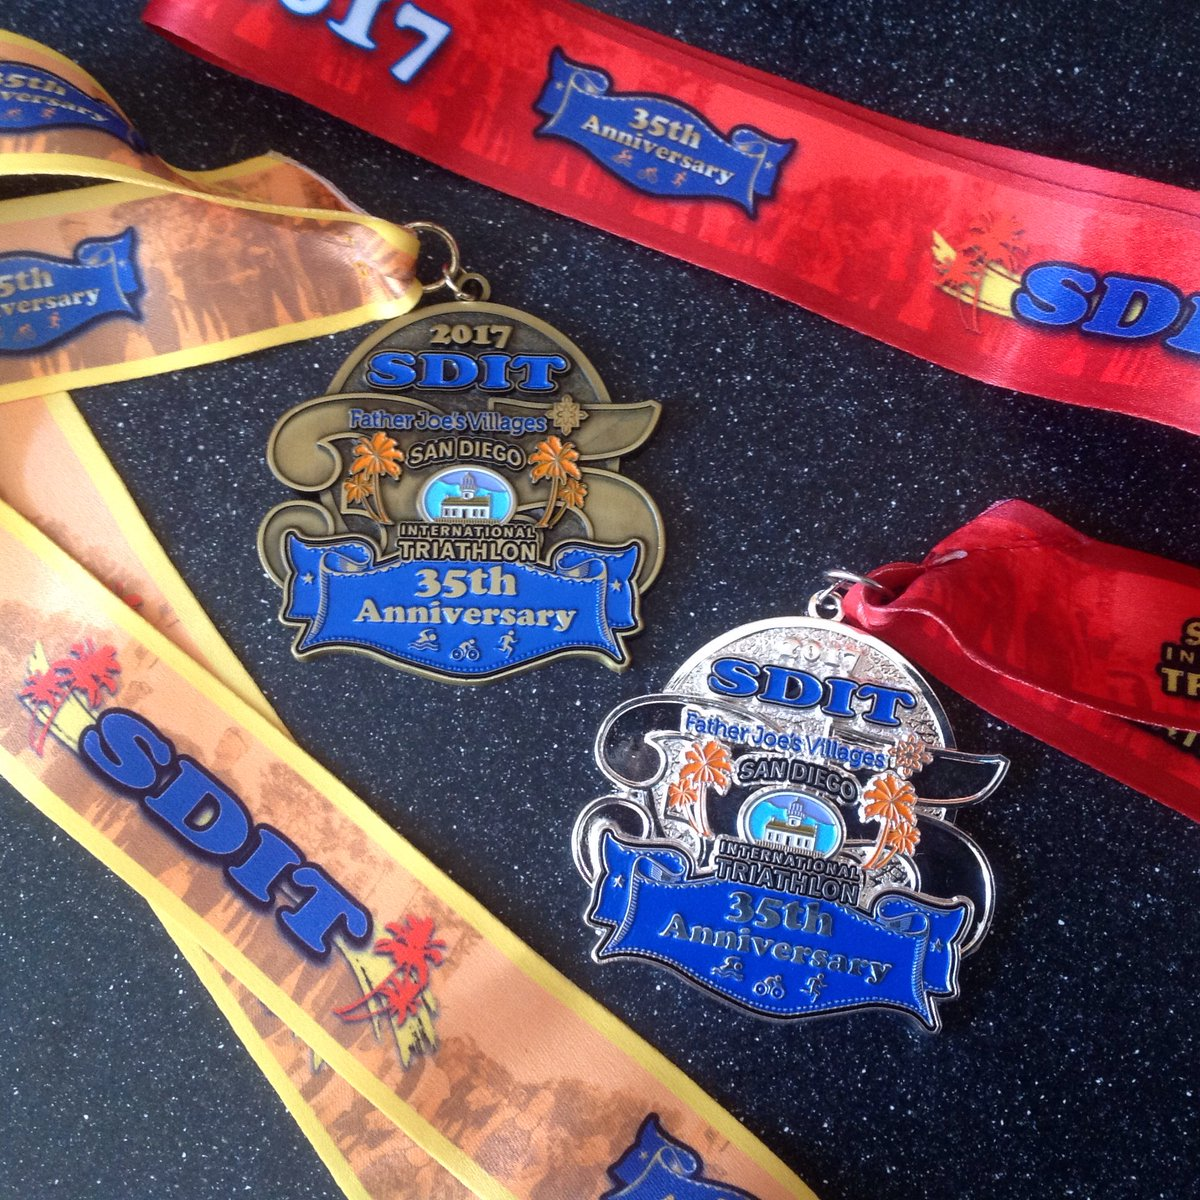 test Twitter Media - #MedalMonday: A So Cal summer tradition: @SDTriSeries San Diego International Triathlon. Congratulations to everyone who raced this weekend! https://t.co/9aiV12gDX7